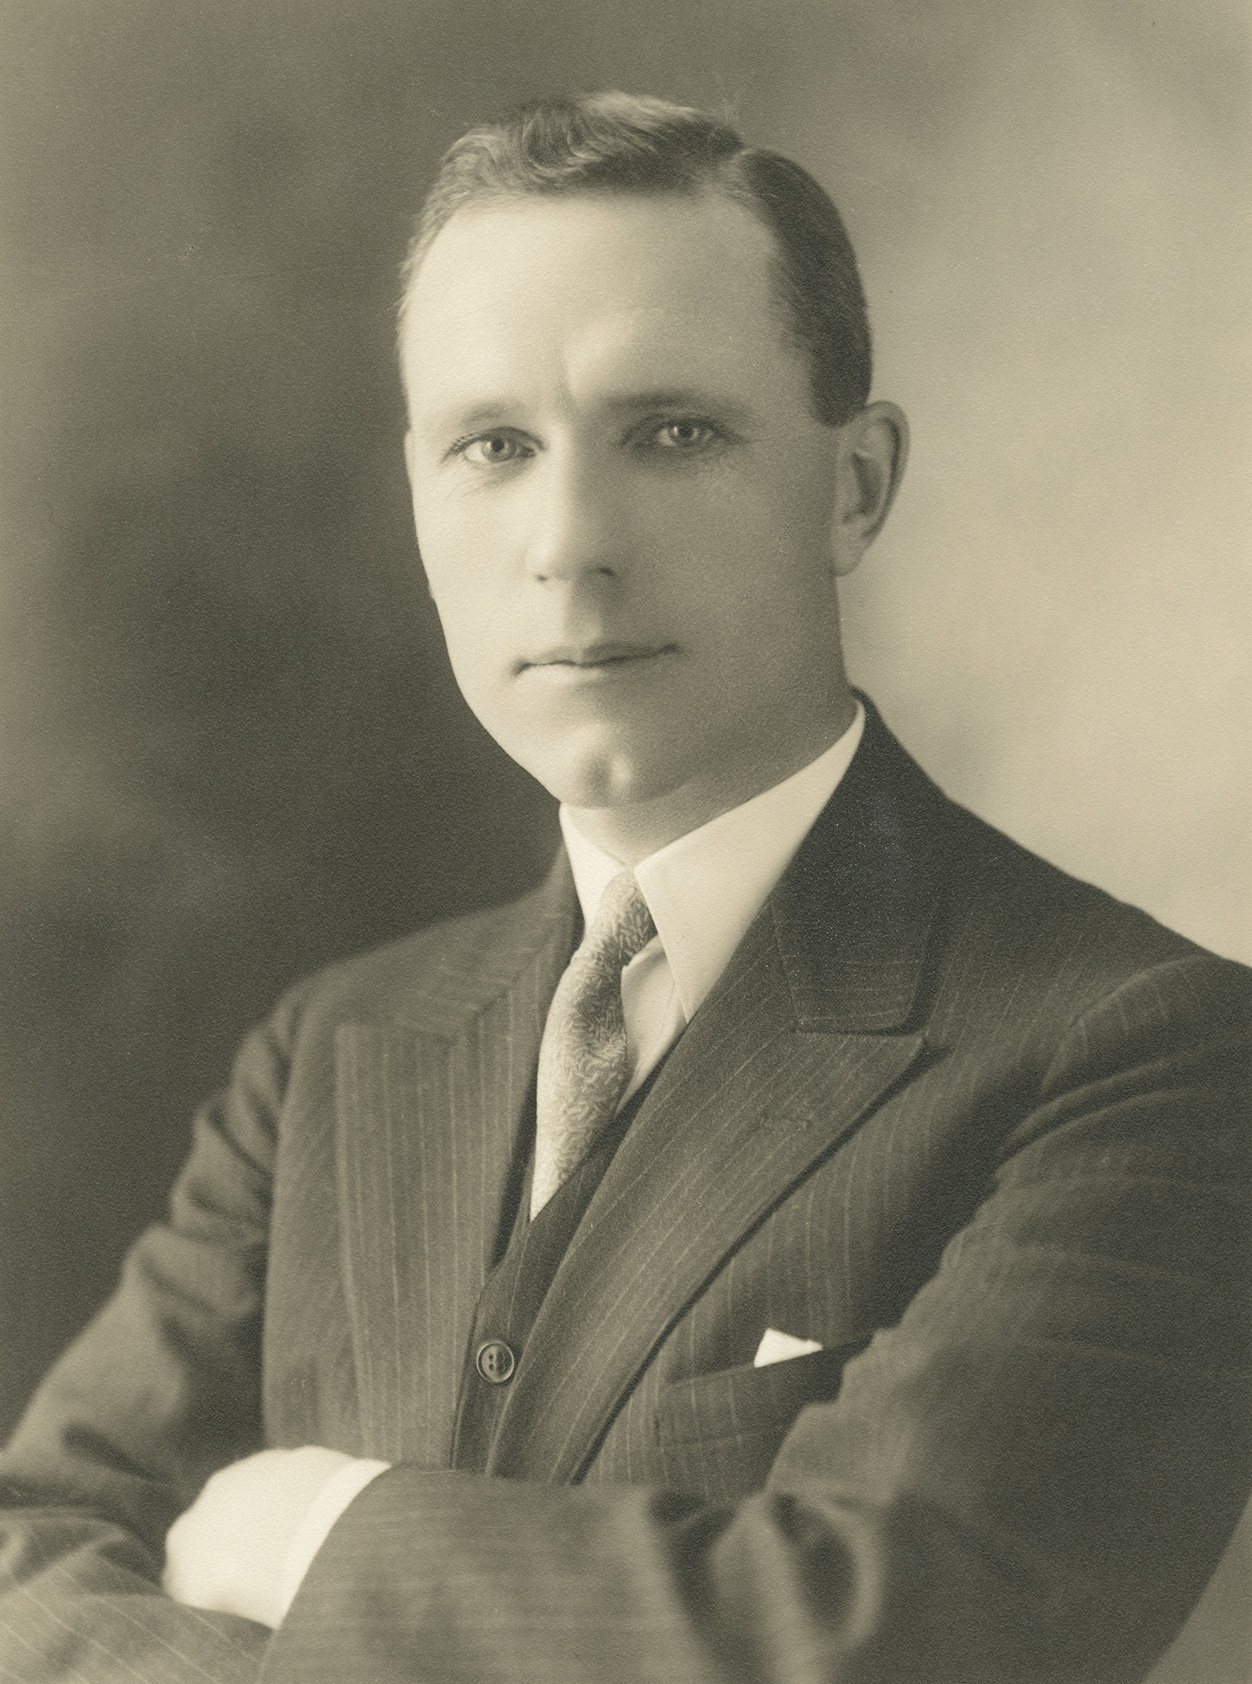 Photograph of Angus L. Macdonald